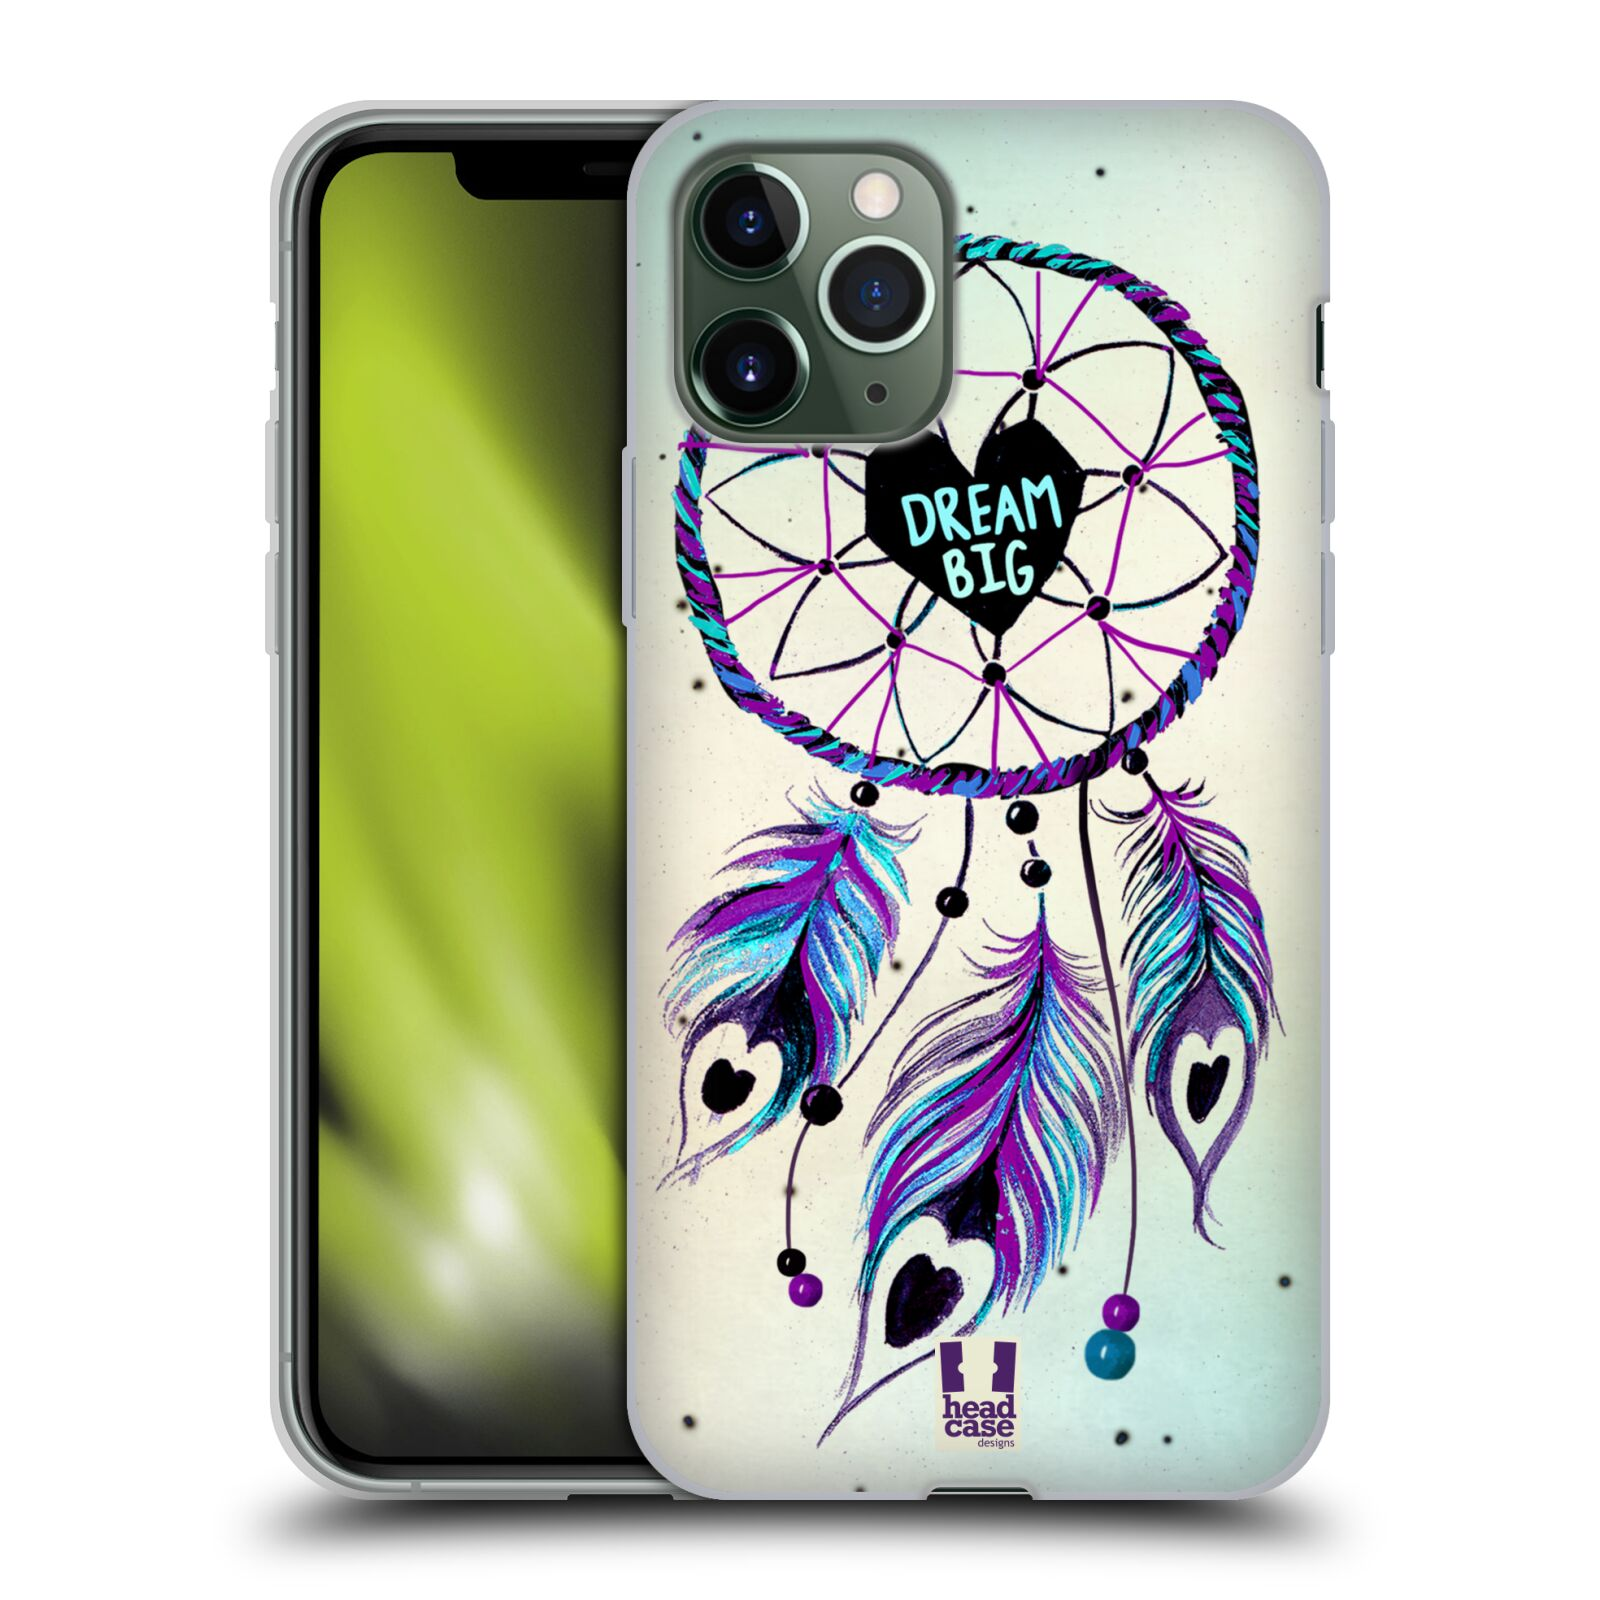 ebay obaly iphone 6s plus , Silikonové pouzdro na mobil Apple iPhone 11 Pro - Head Case - Lapač Assorted Dream Big Srdce